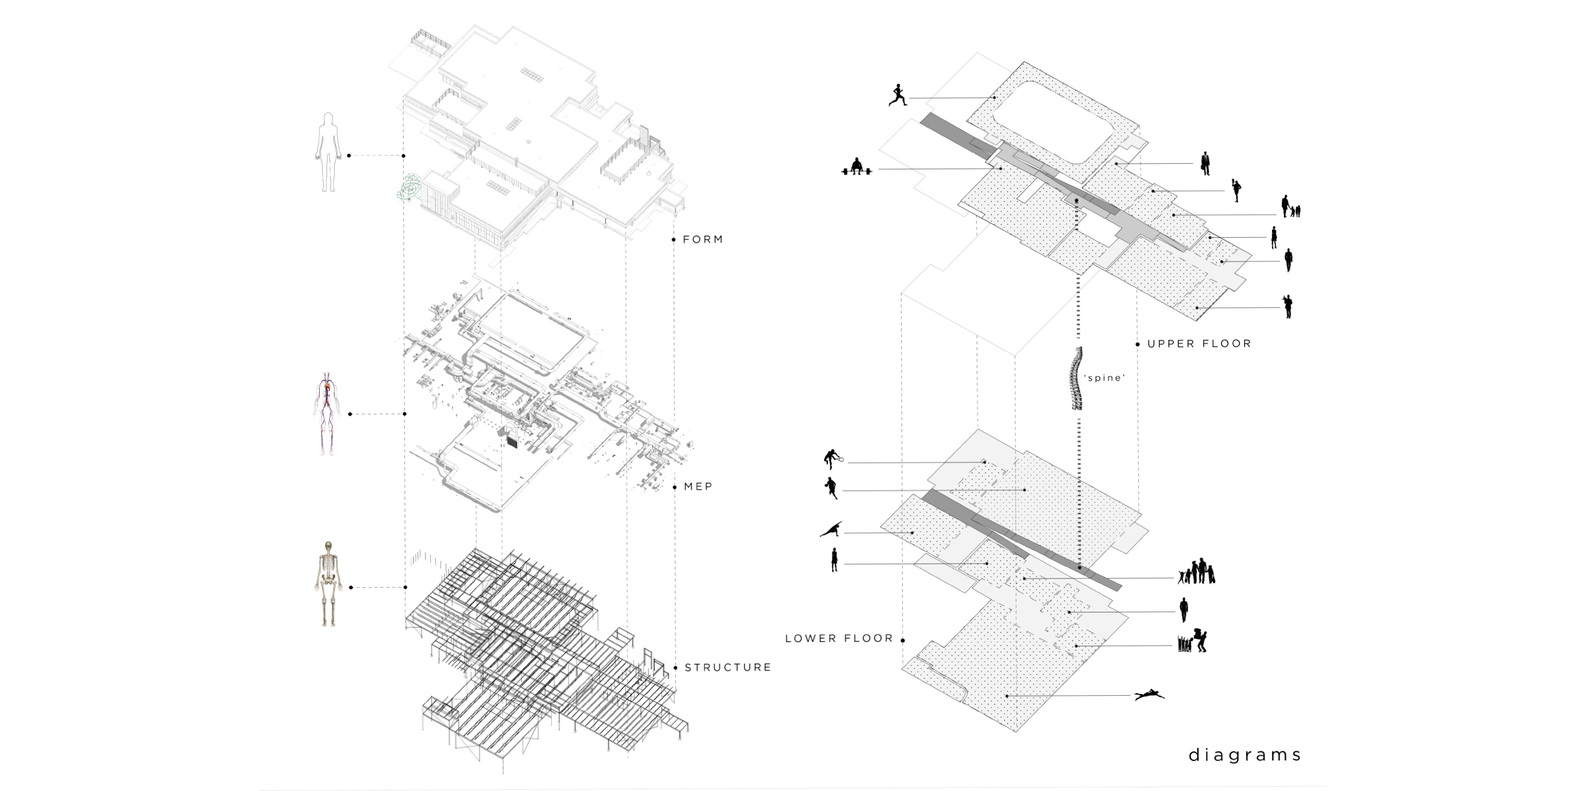 hight resolution of gallery of excelsior springs community center sfs architecture 31 diagram of community center